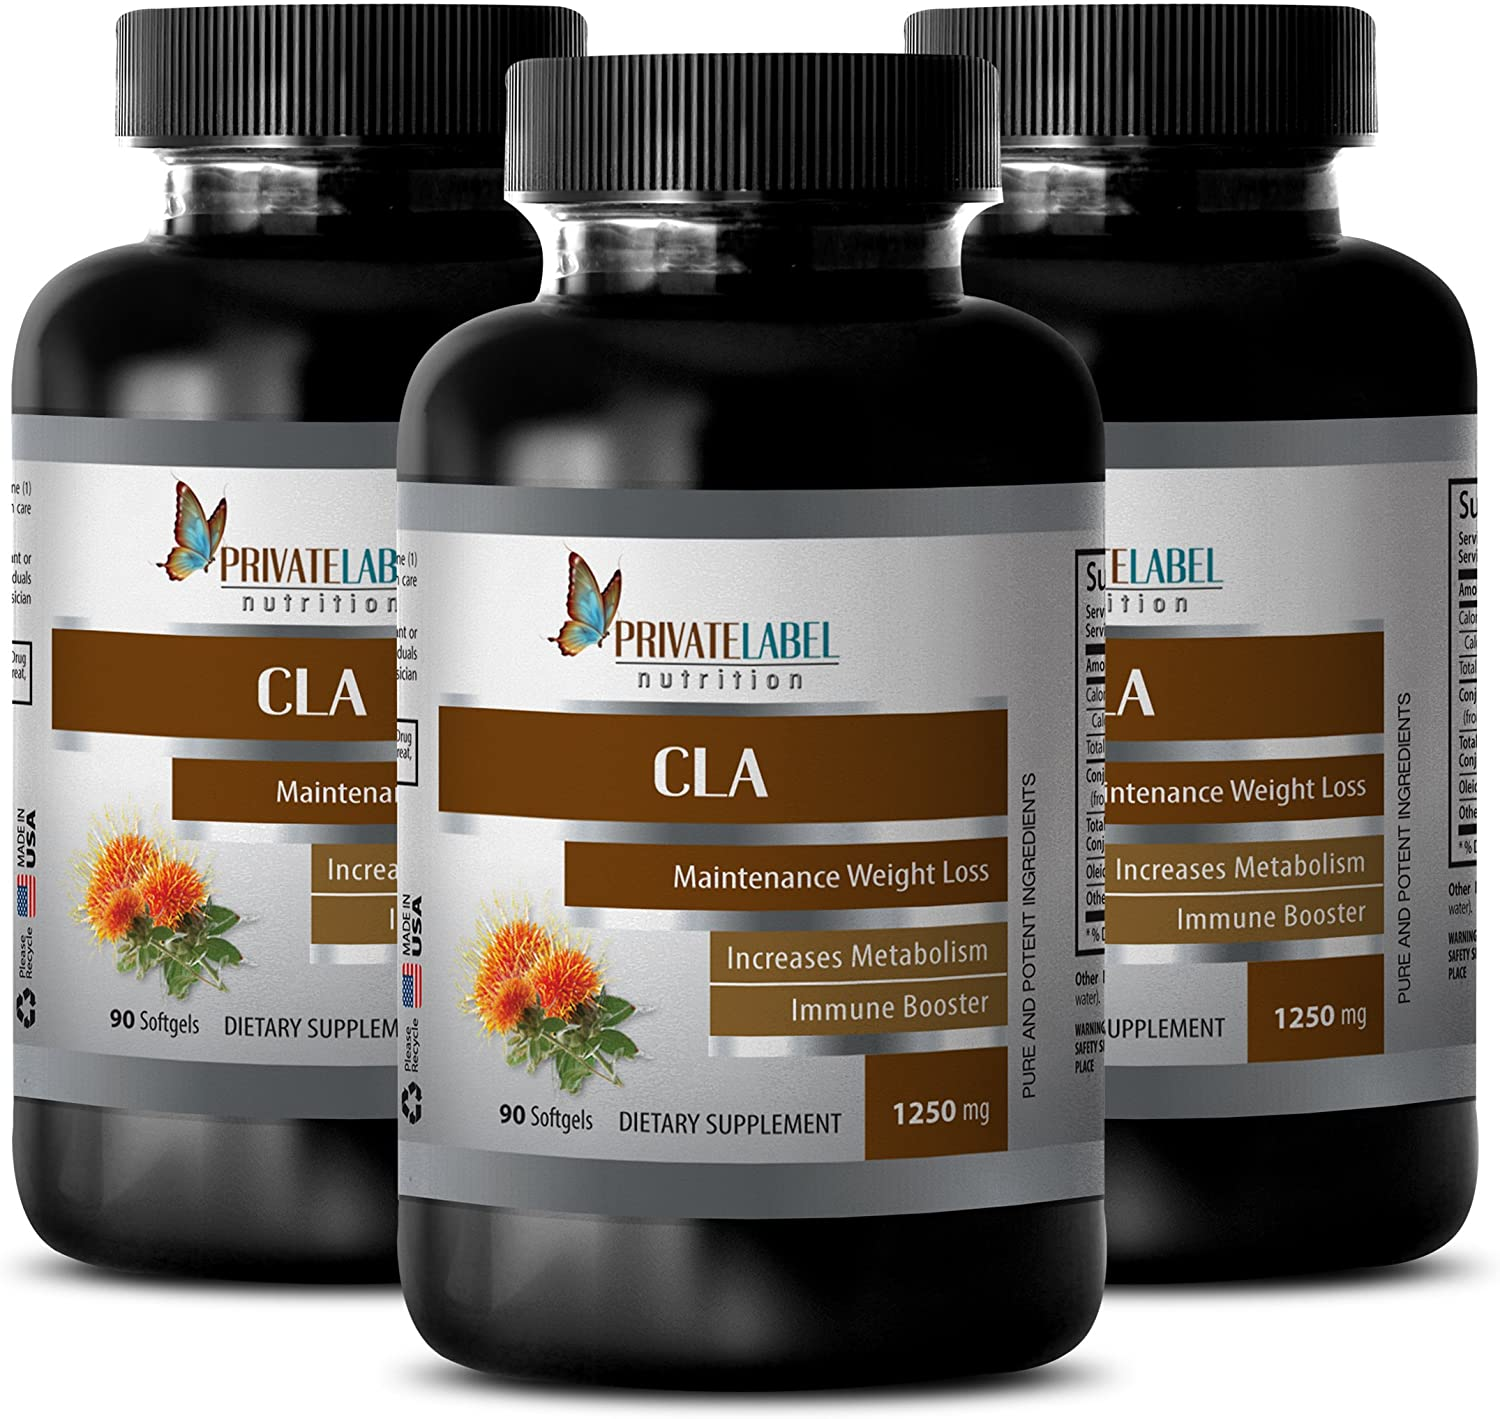 Energy Boost Natural - CLA 1250MG - Safflower Oil - conjugated linoleic Acid weightloss - 3 Bottles (180 Softgels)